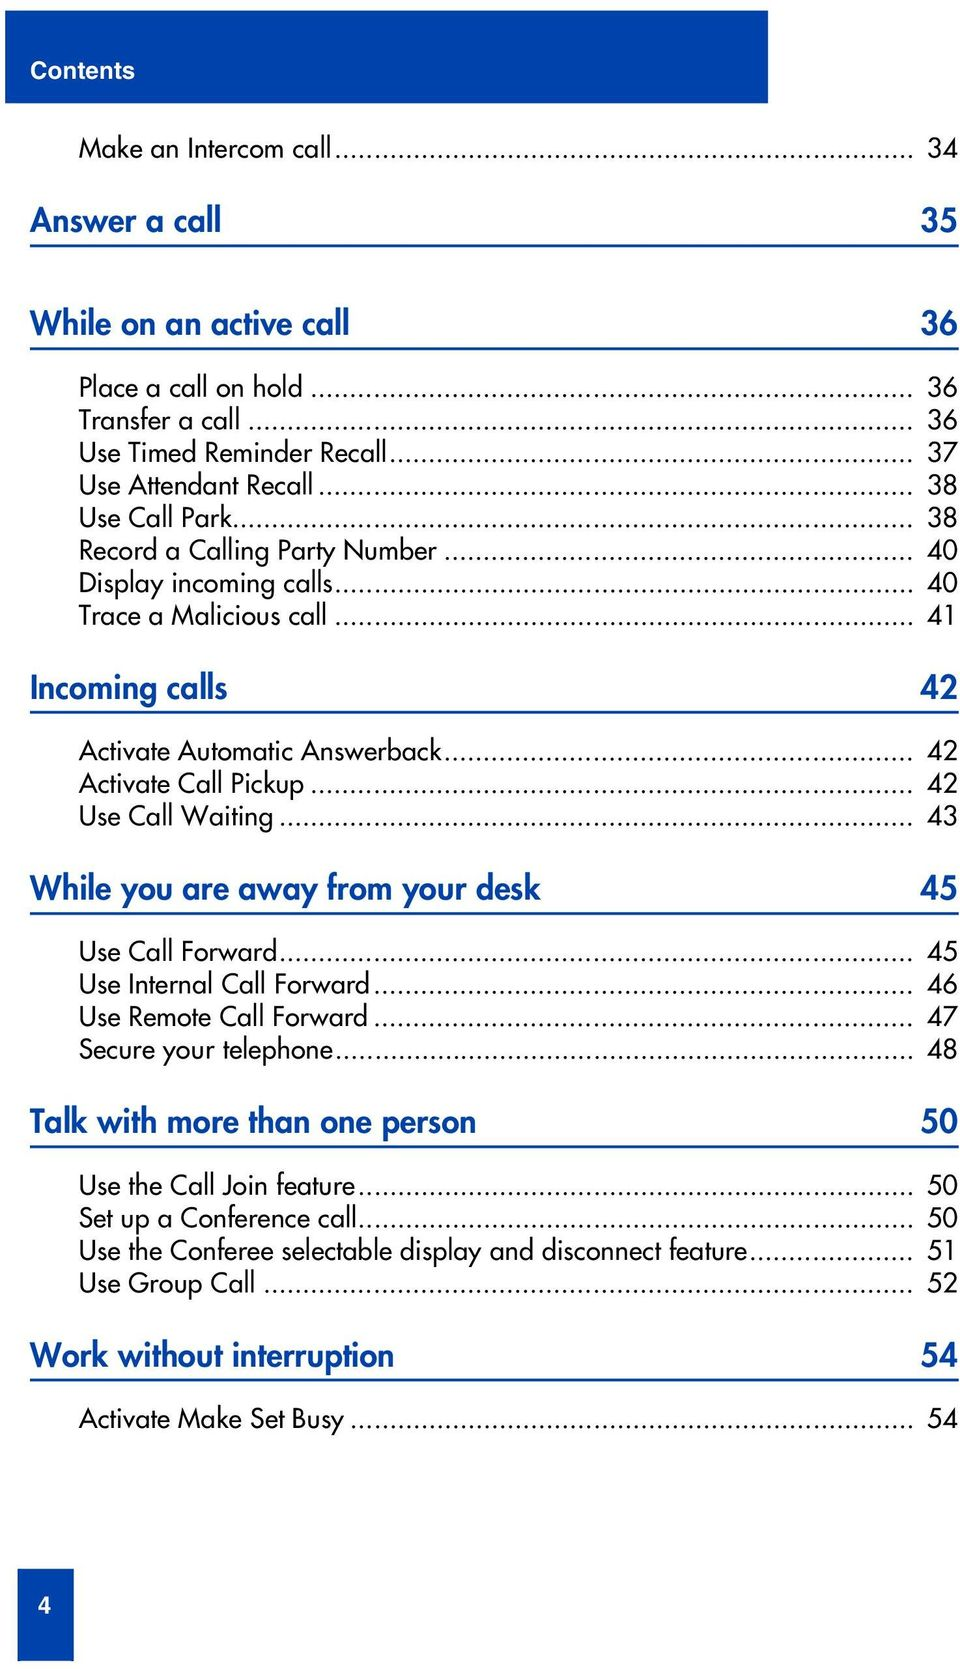 .. 42 Use Call Waiting... 43 While you are away from your desk 45 Use Call Forward... 45 Use Internal Call Forward... 46 Use Remote Call Forward... 47 Secure your telephone.